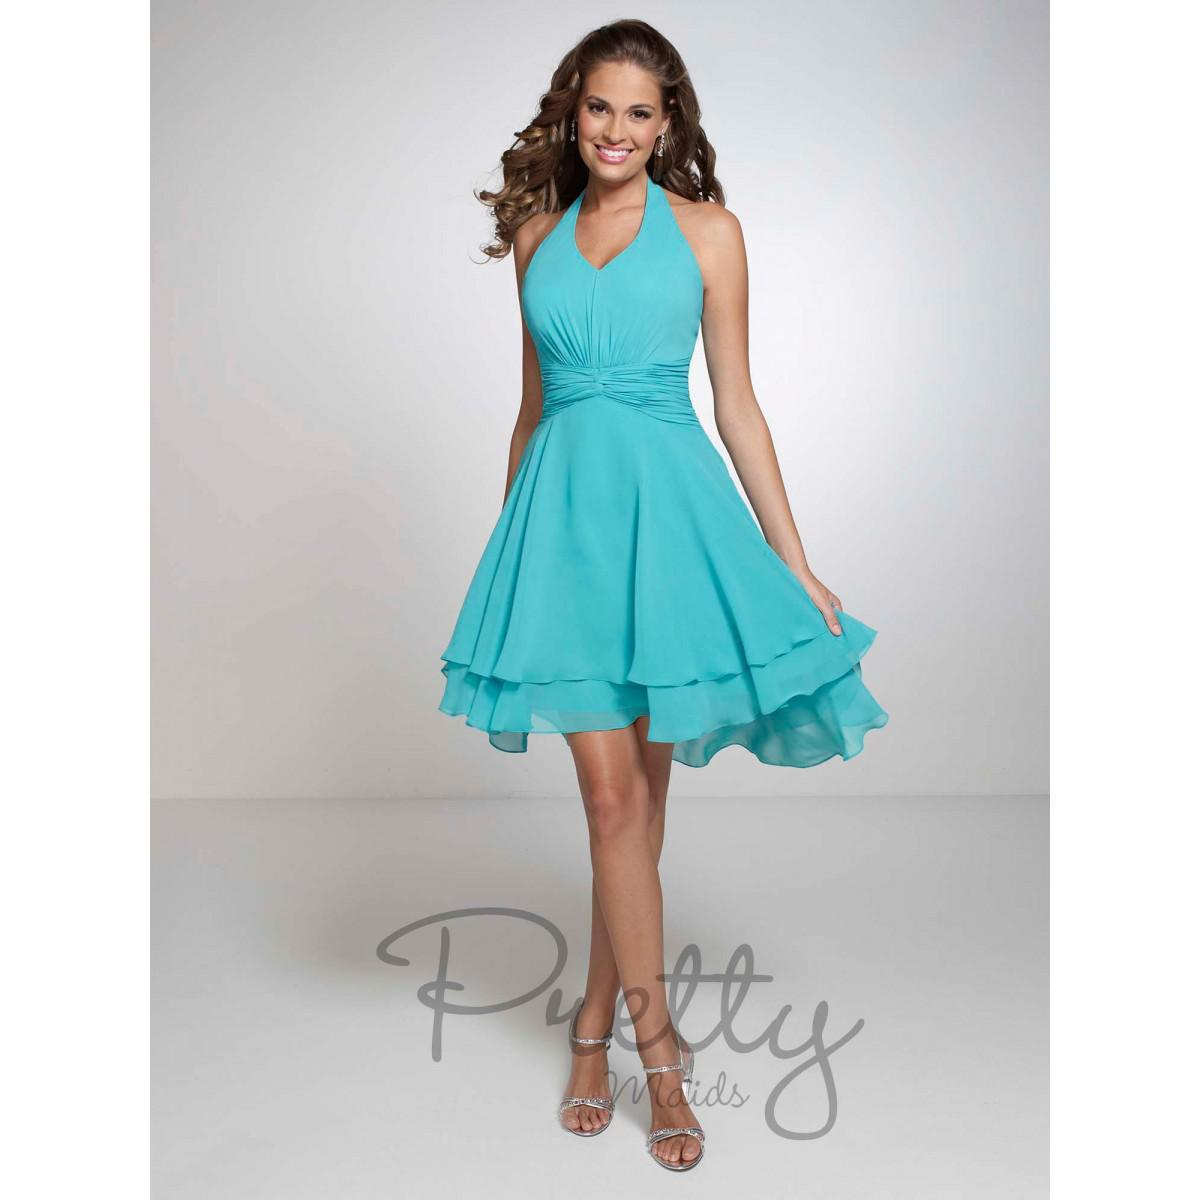 Turquoise halter short bridesmaid dresses 2016 new ruffles a line see larger image ombrellifo Choice Image